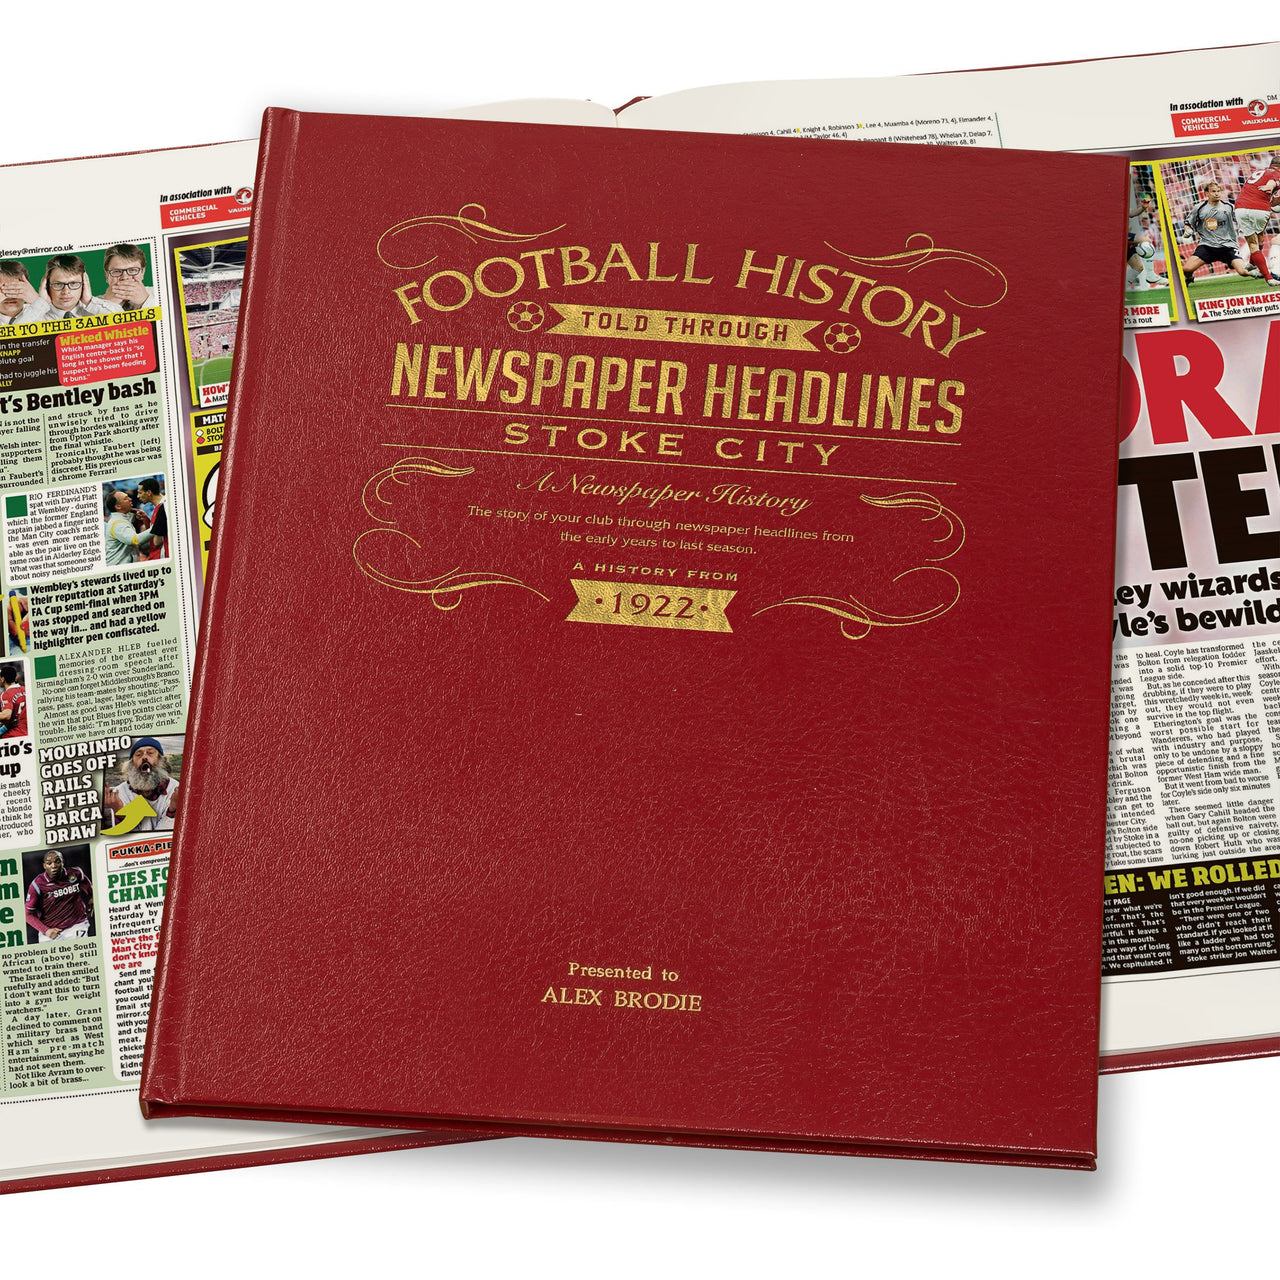 Stoke City Newspaper Book - Leather Red Cover